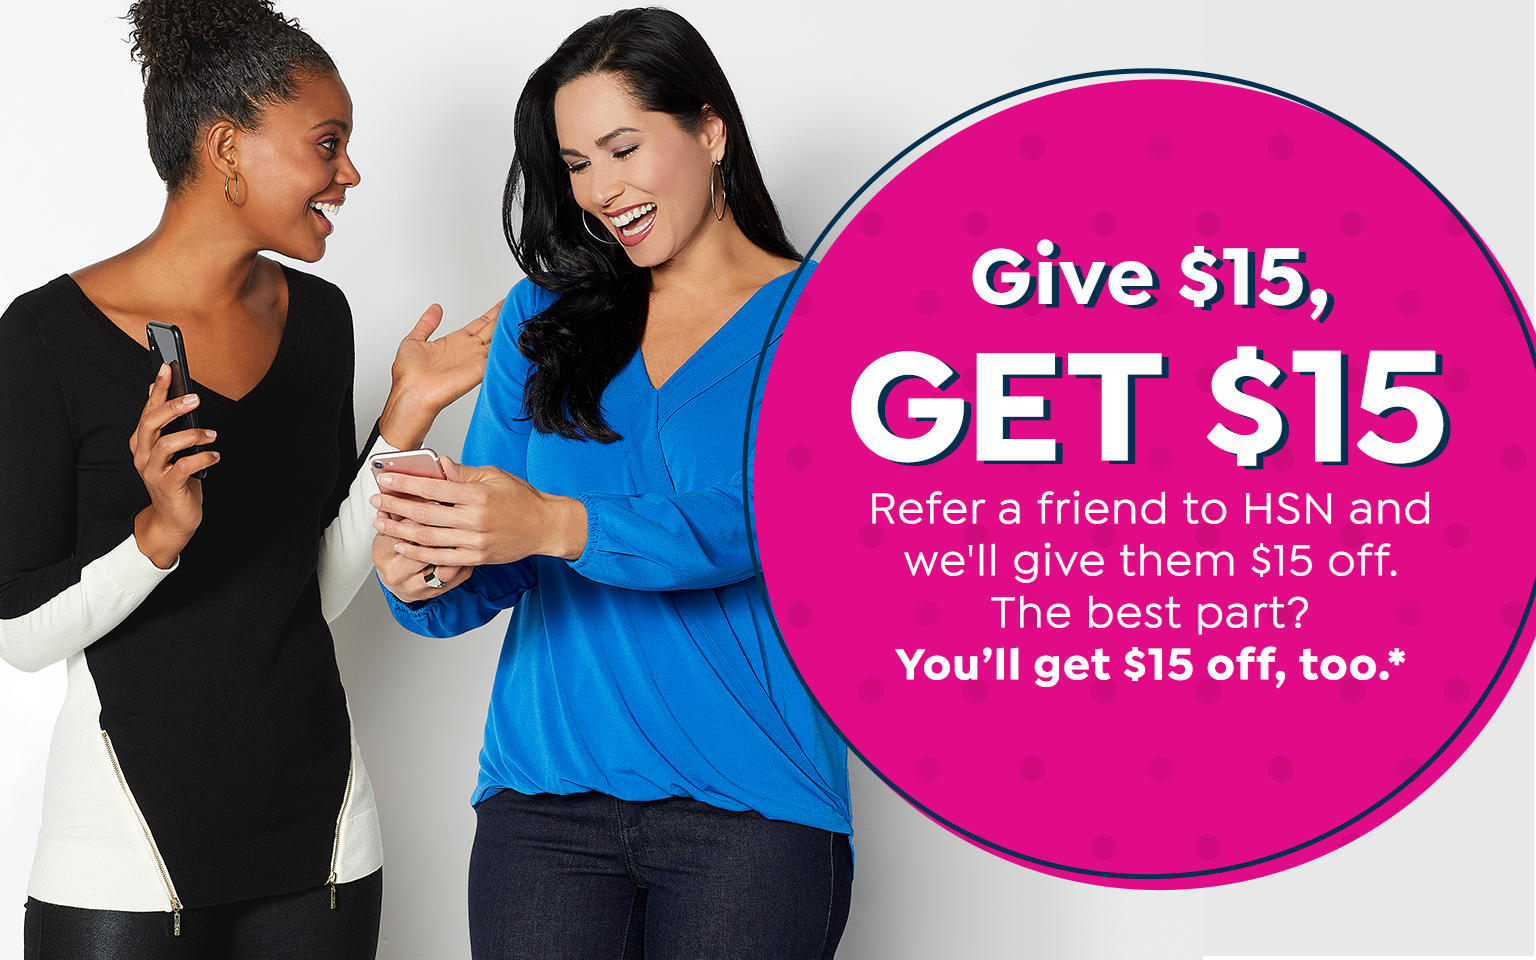 Give $15. GET $15. Refer a friend to HSN and we'll give them $15 off. You'll get $15 off, too.